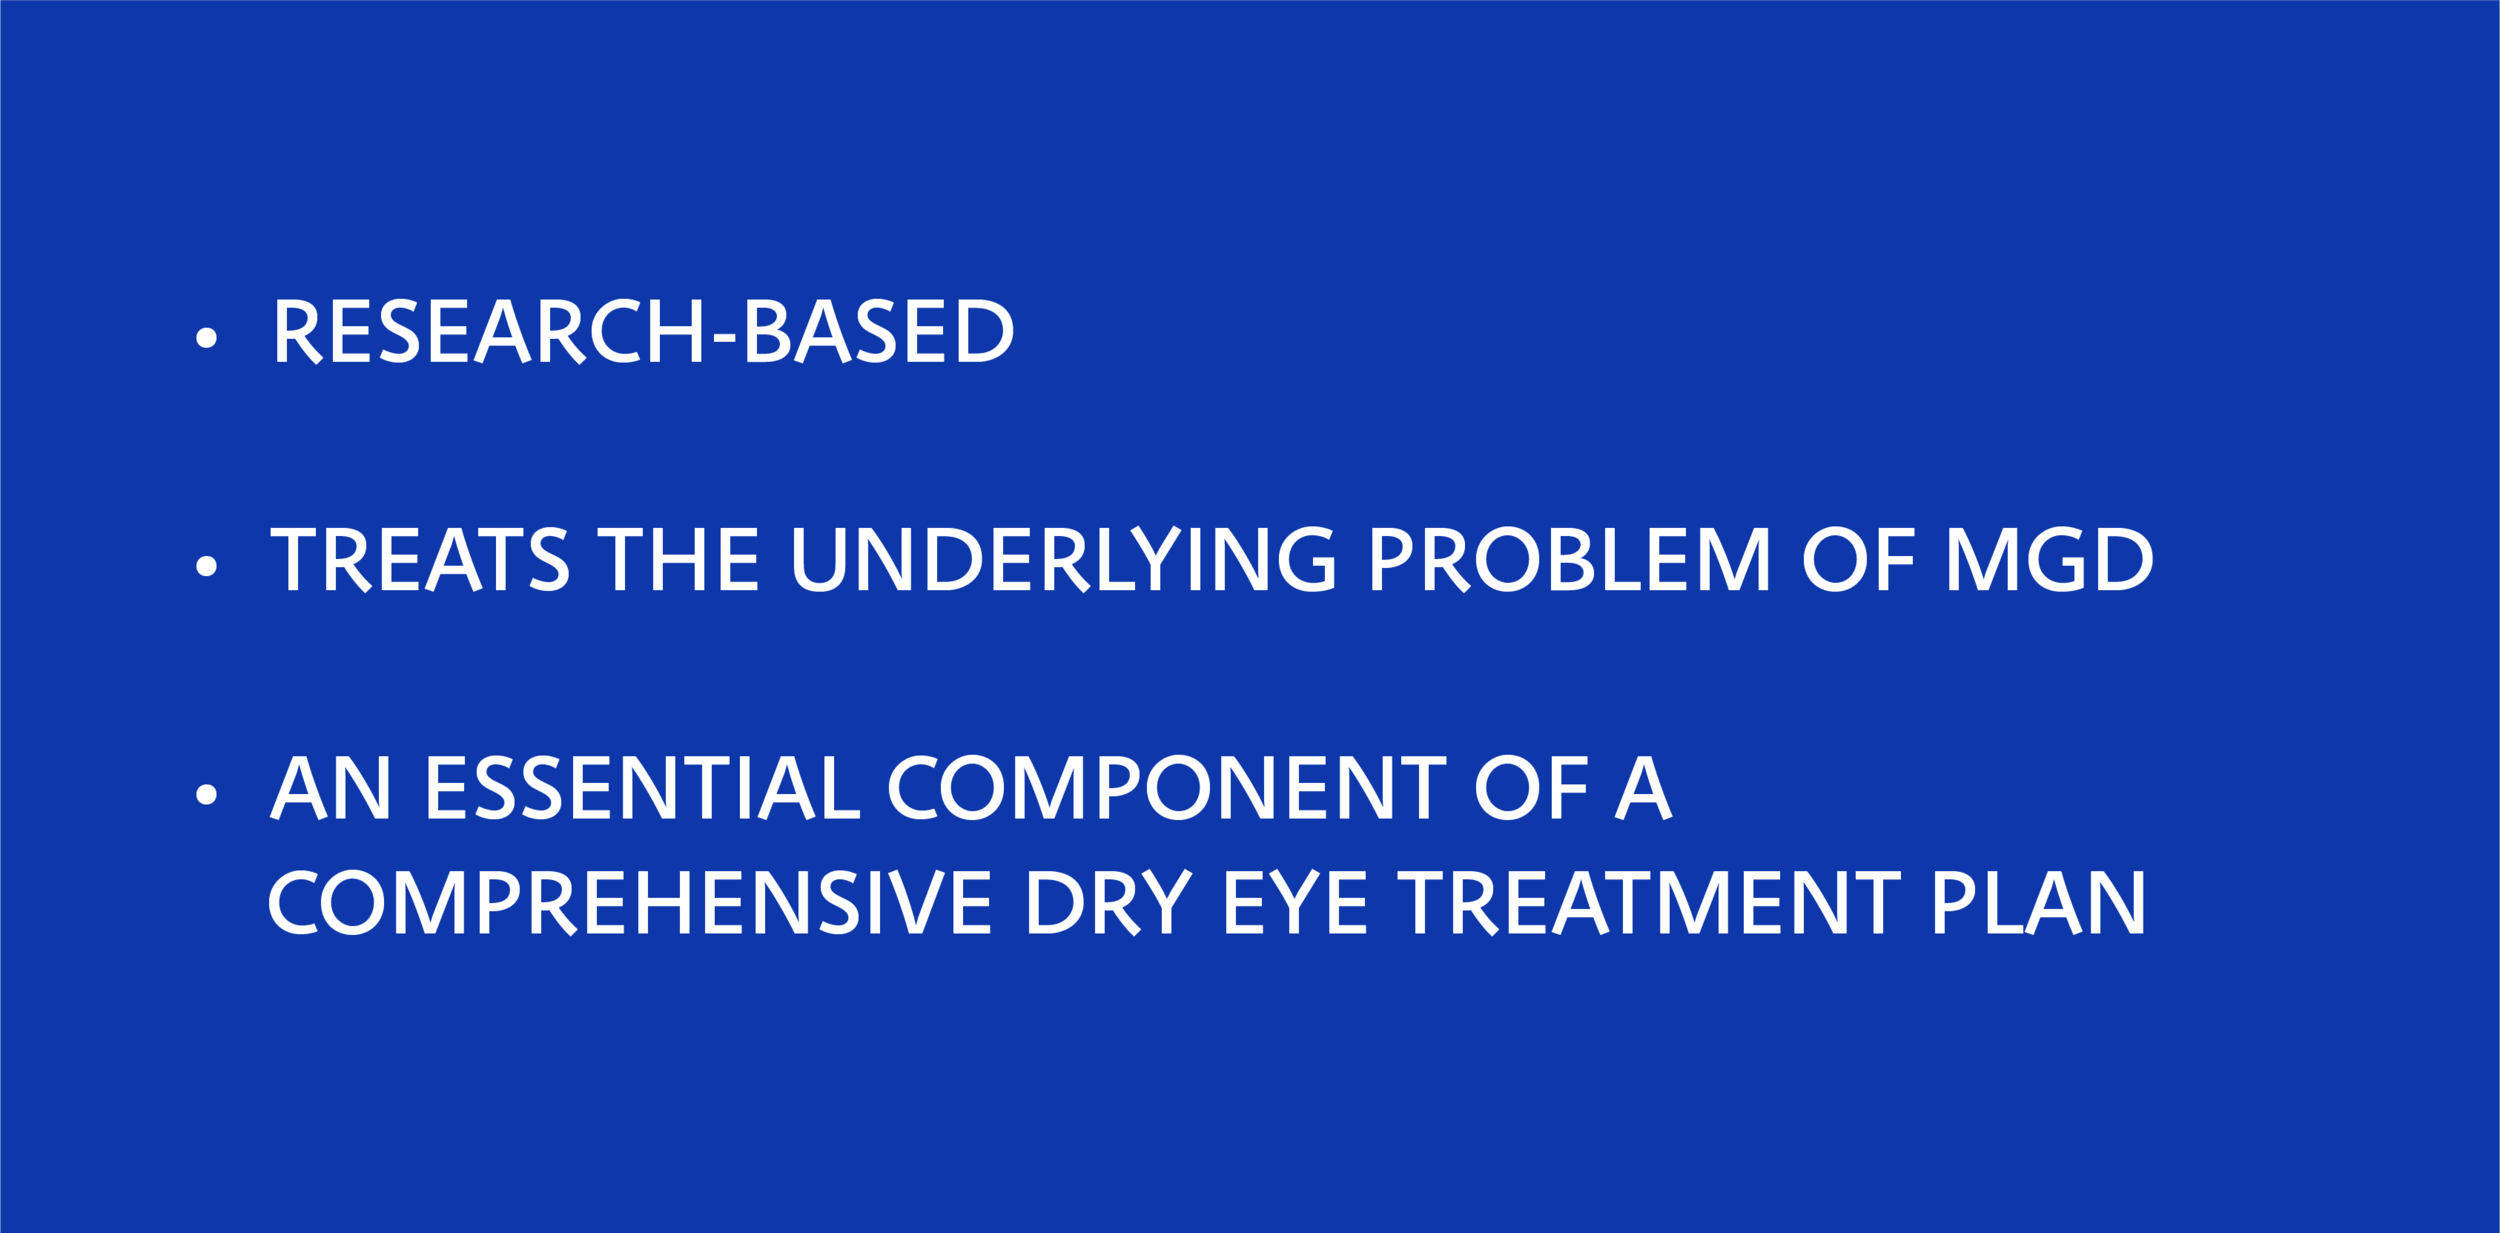 The Maskin Probing Protocol for Meibomian Gland Dysfunction (MGD) is a research-based procedure developed as advances to deeper understanding of Meibomian Gland structure and function progressed. Unlike many traditional modern therapies, the Maskin Probing Protocol treats the underlying problem of MGD, targeting scar tissue encircling and constricting Meibomian Gland ducts at various points along the gland. Meibomian Gland Probing (MGP) is an essential component of a comprehensive dry eye treatment plan.